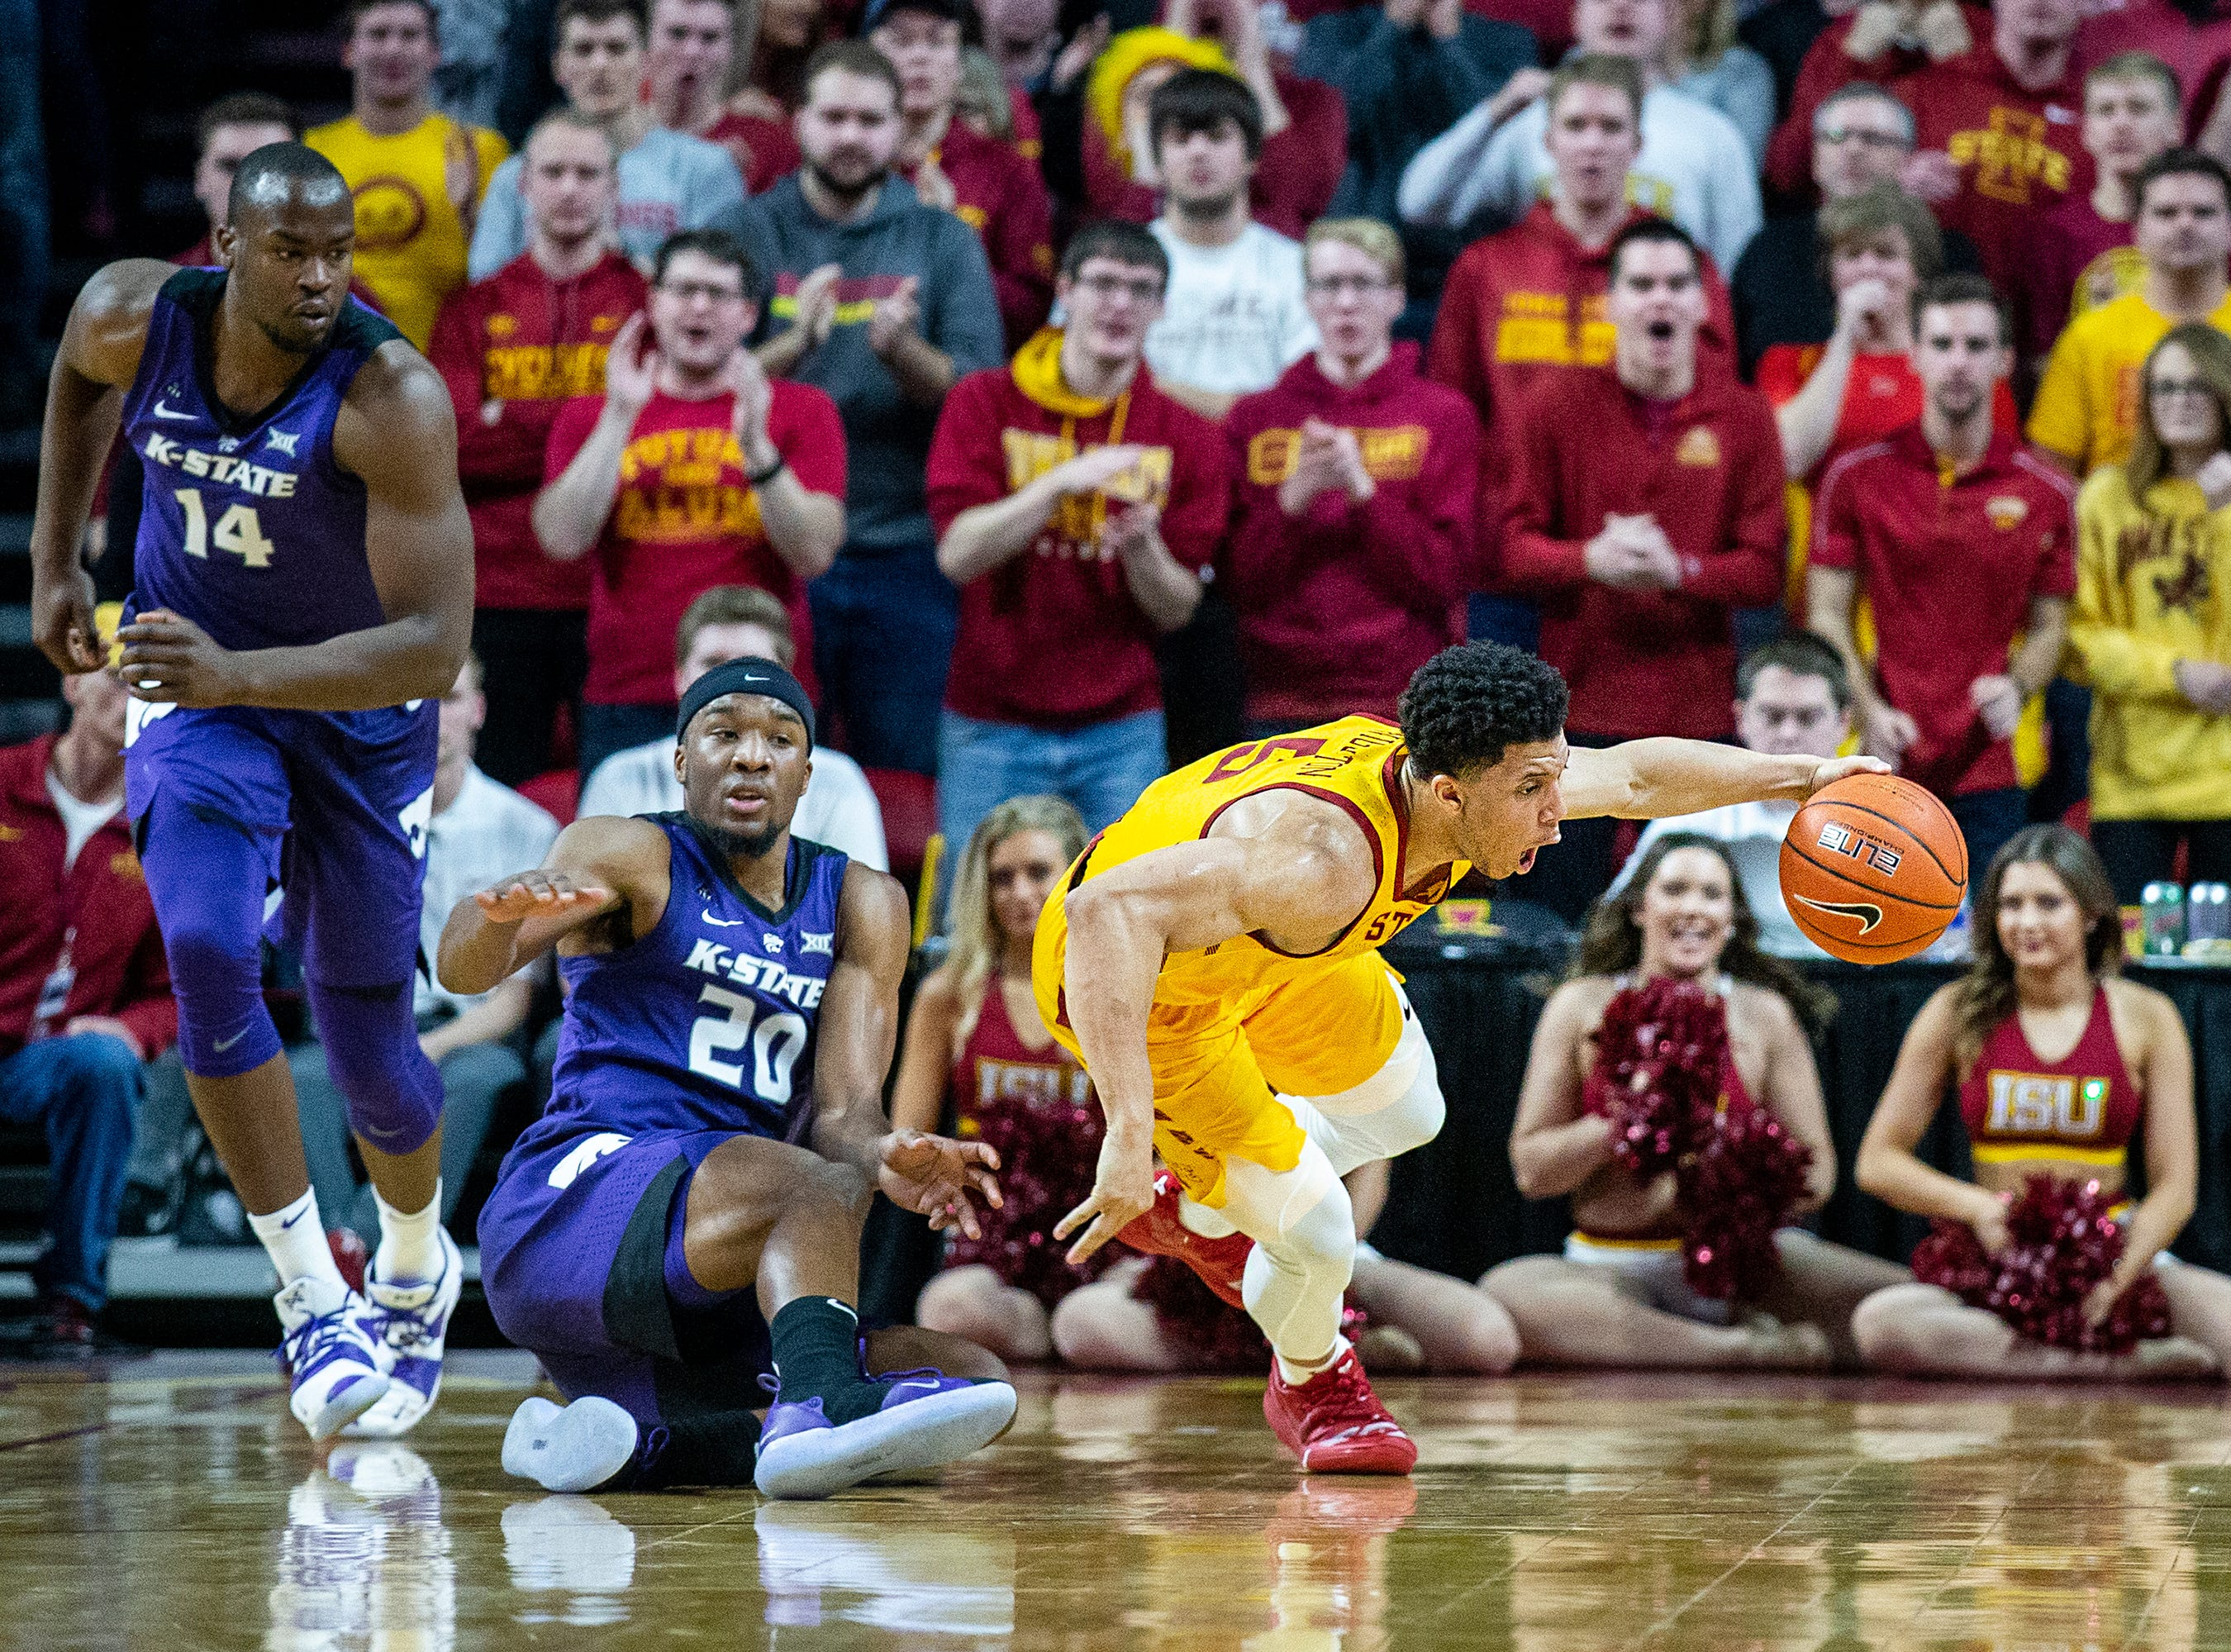 Iowa State's Lindell Wigginton tries to hold on to the ball during the Iowa State men's basketball game against Kansas State on Saturday, Jan. 12, 2019, in Hilton Coliseum. The Cyclones lost to KSU by one point, 58-57.